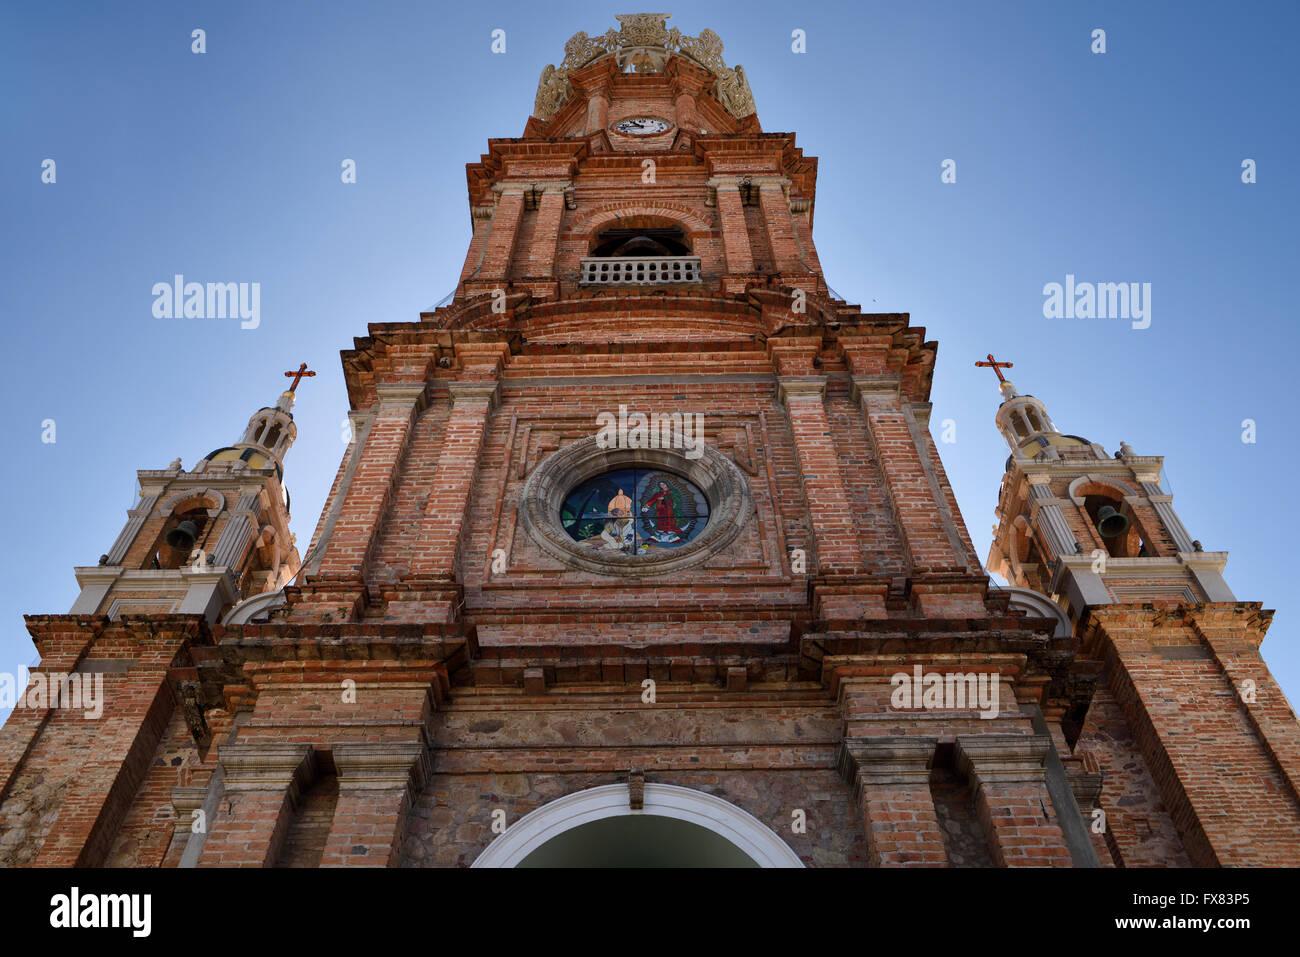 Facade of Our Lady of Guadalupe in Puerto Vallarta Mexico - Stock Image